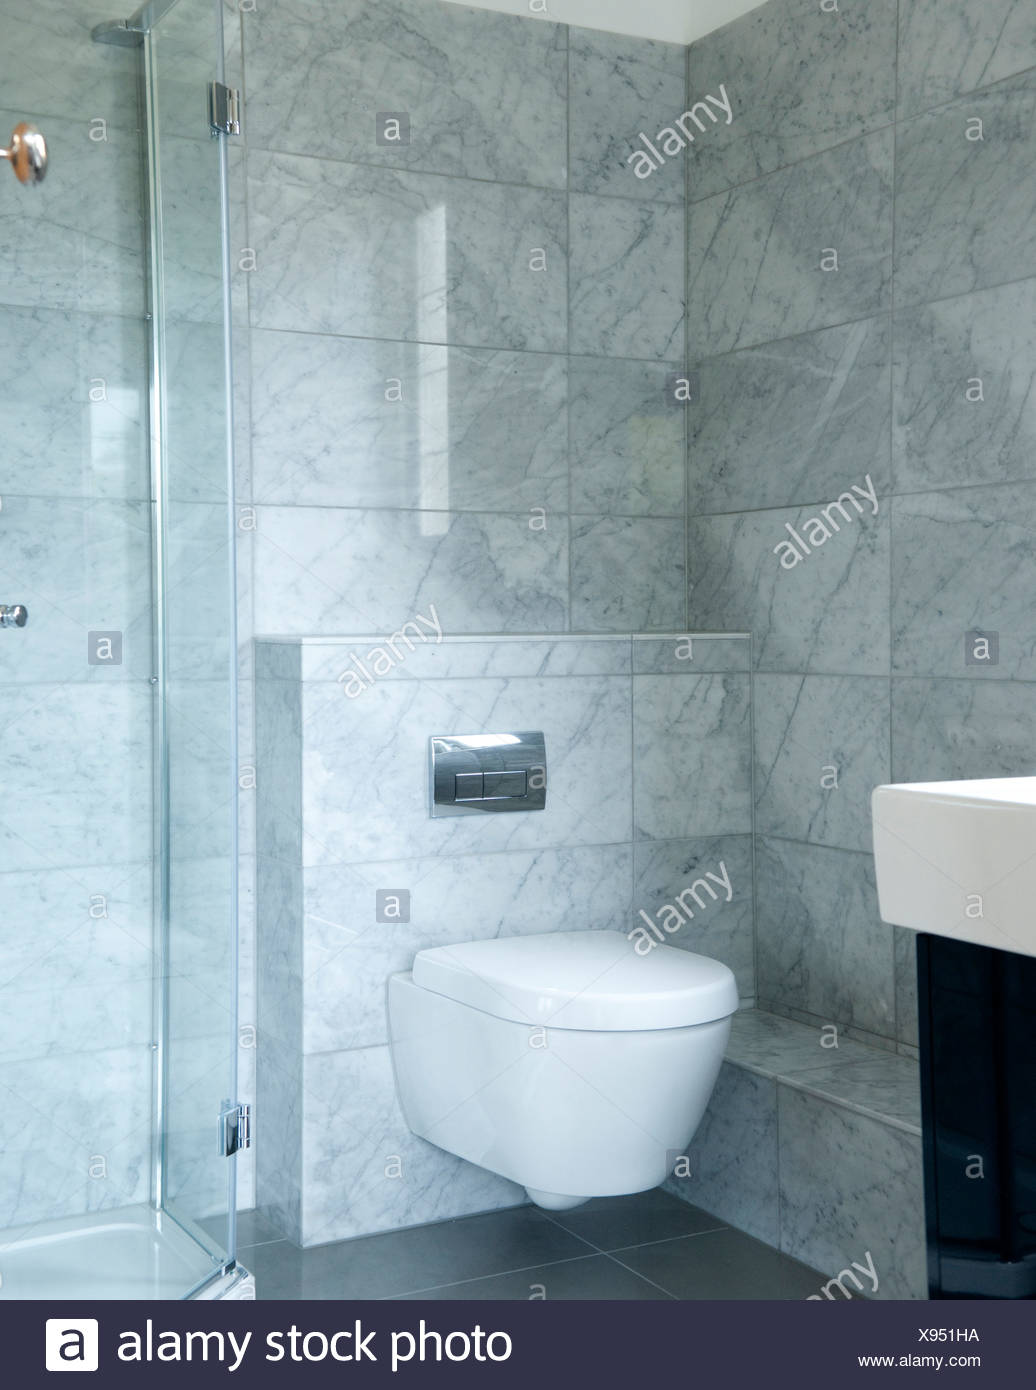 A bathroom interior with toilet and shower unit Stock Photo ...